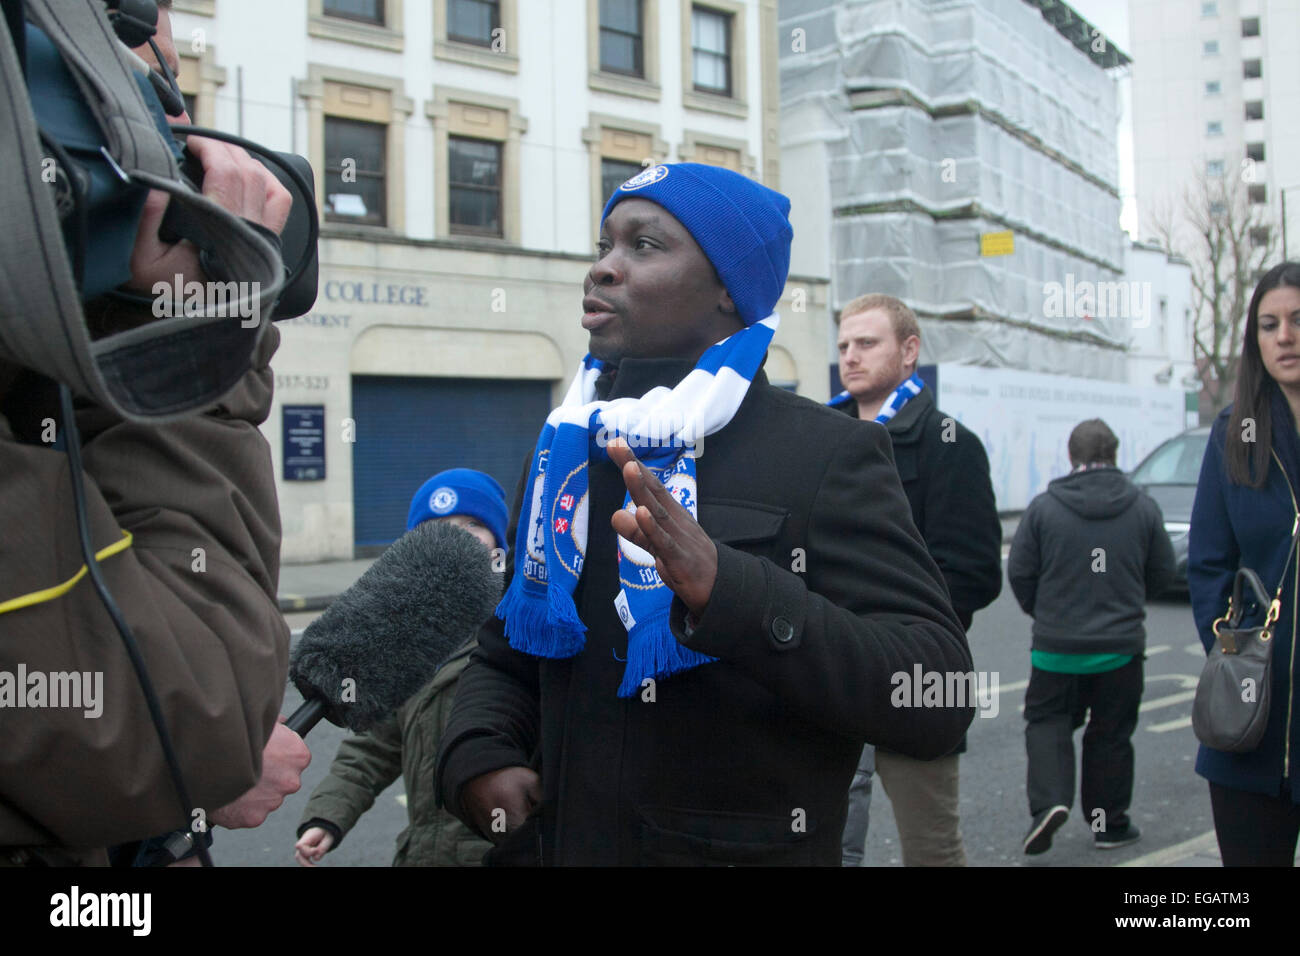 Stamford Bridge London,UK. 21st February 2015. A black Chelsea football supporter arrives for the match against - Stock Image